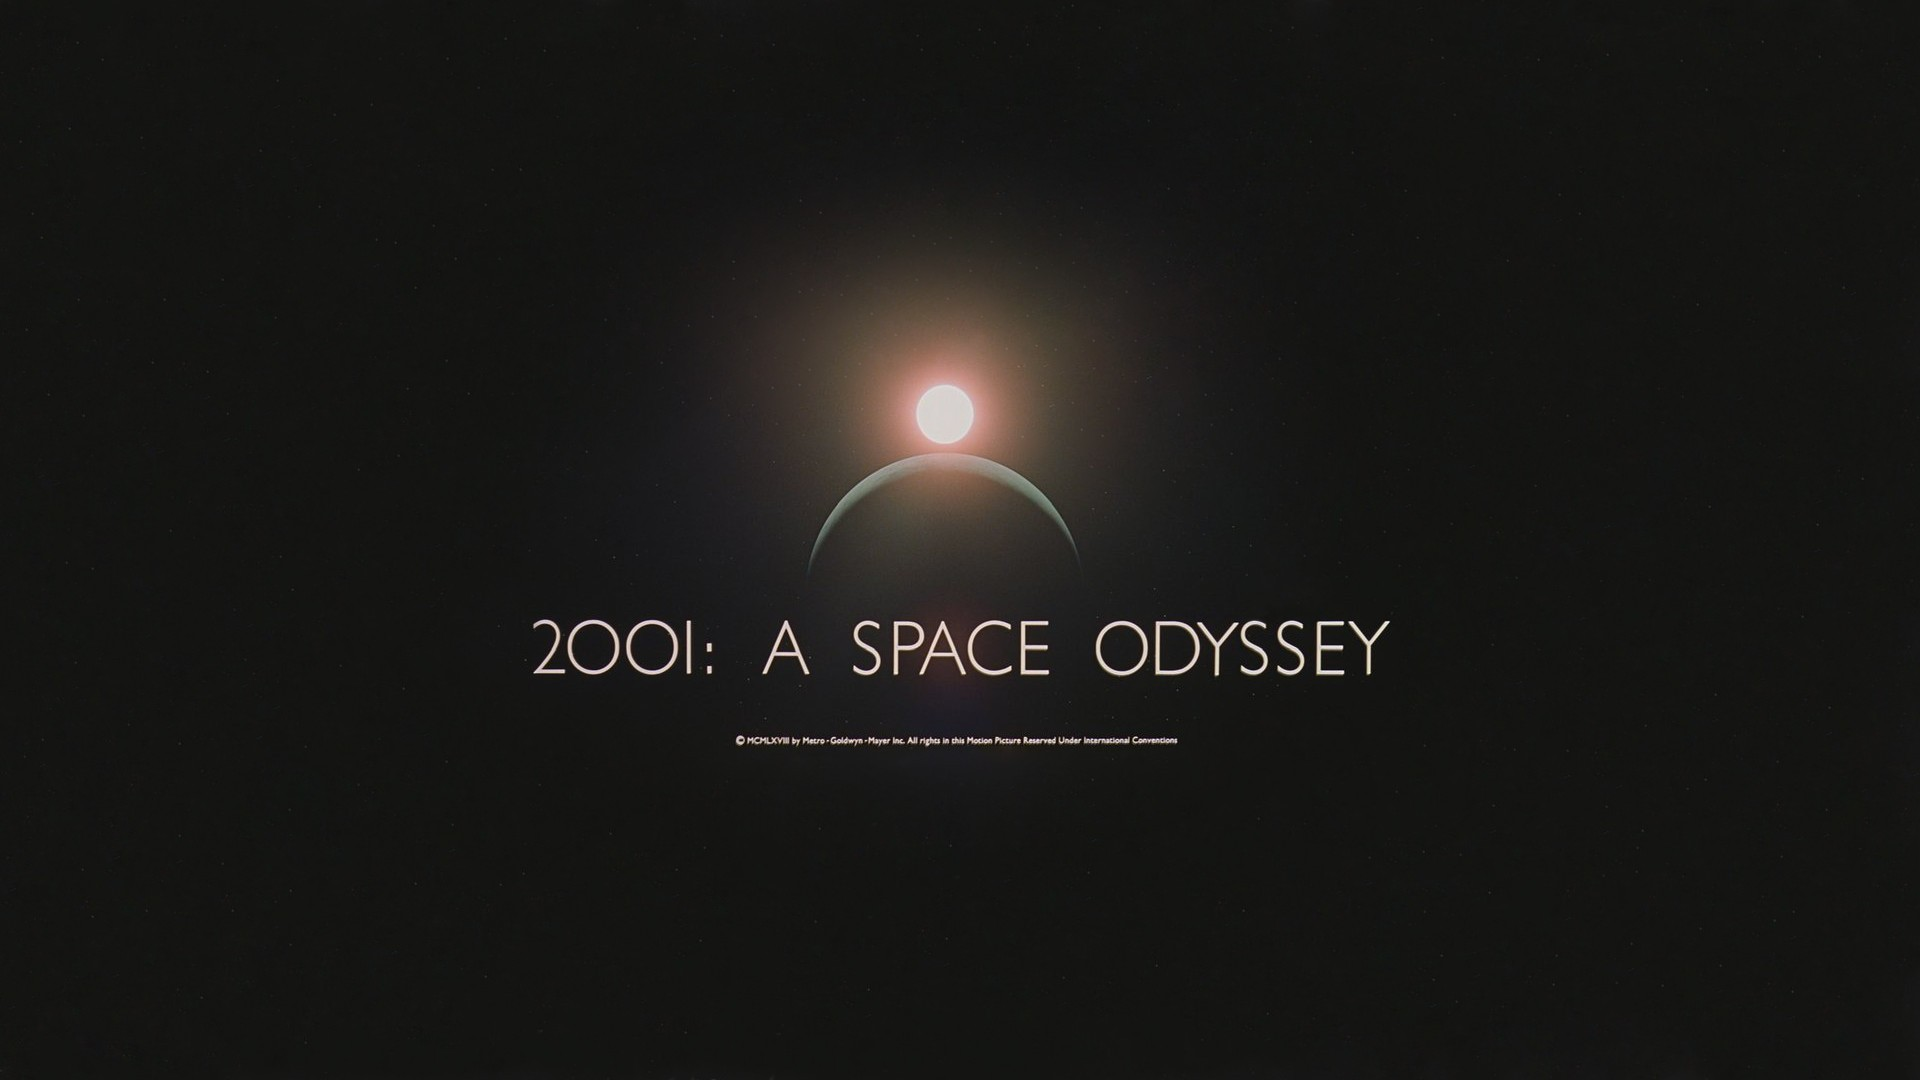 2001 a space odyssey movies outer wallpaper